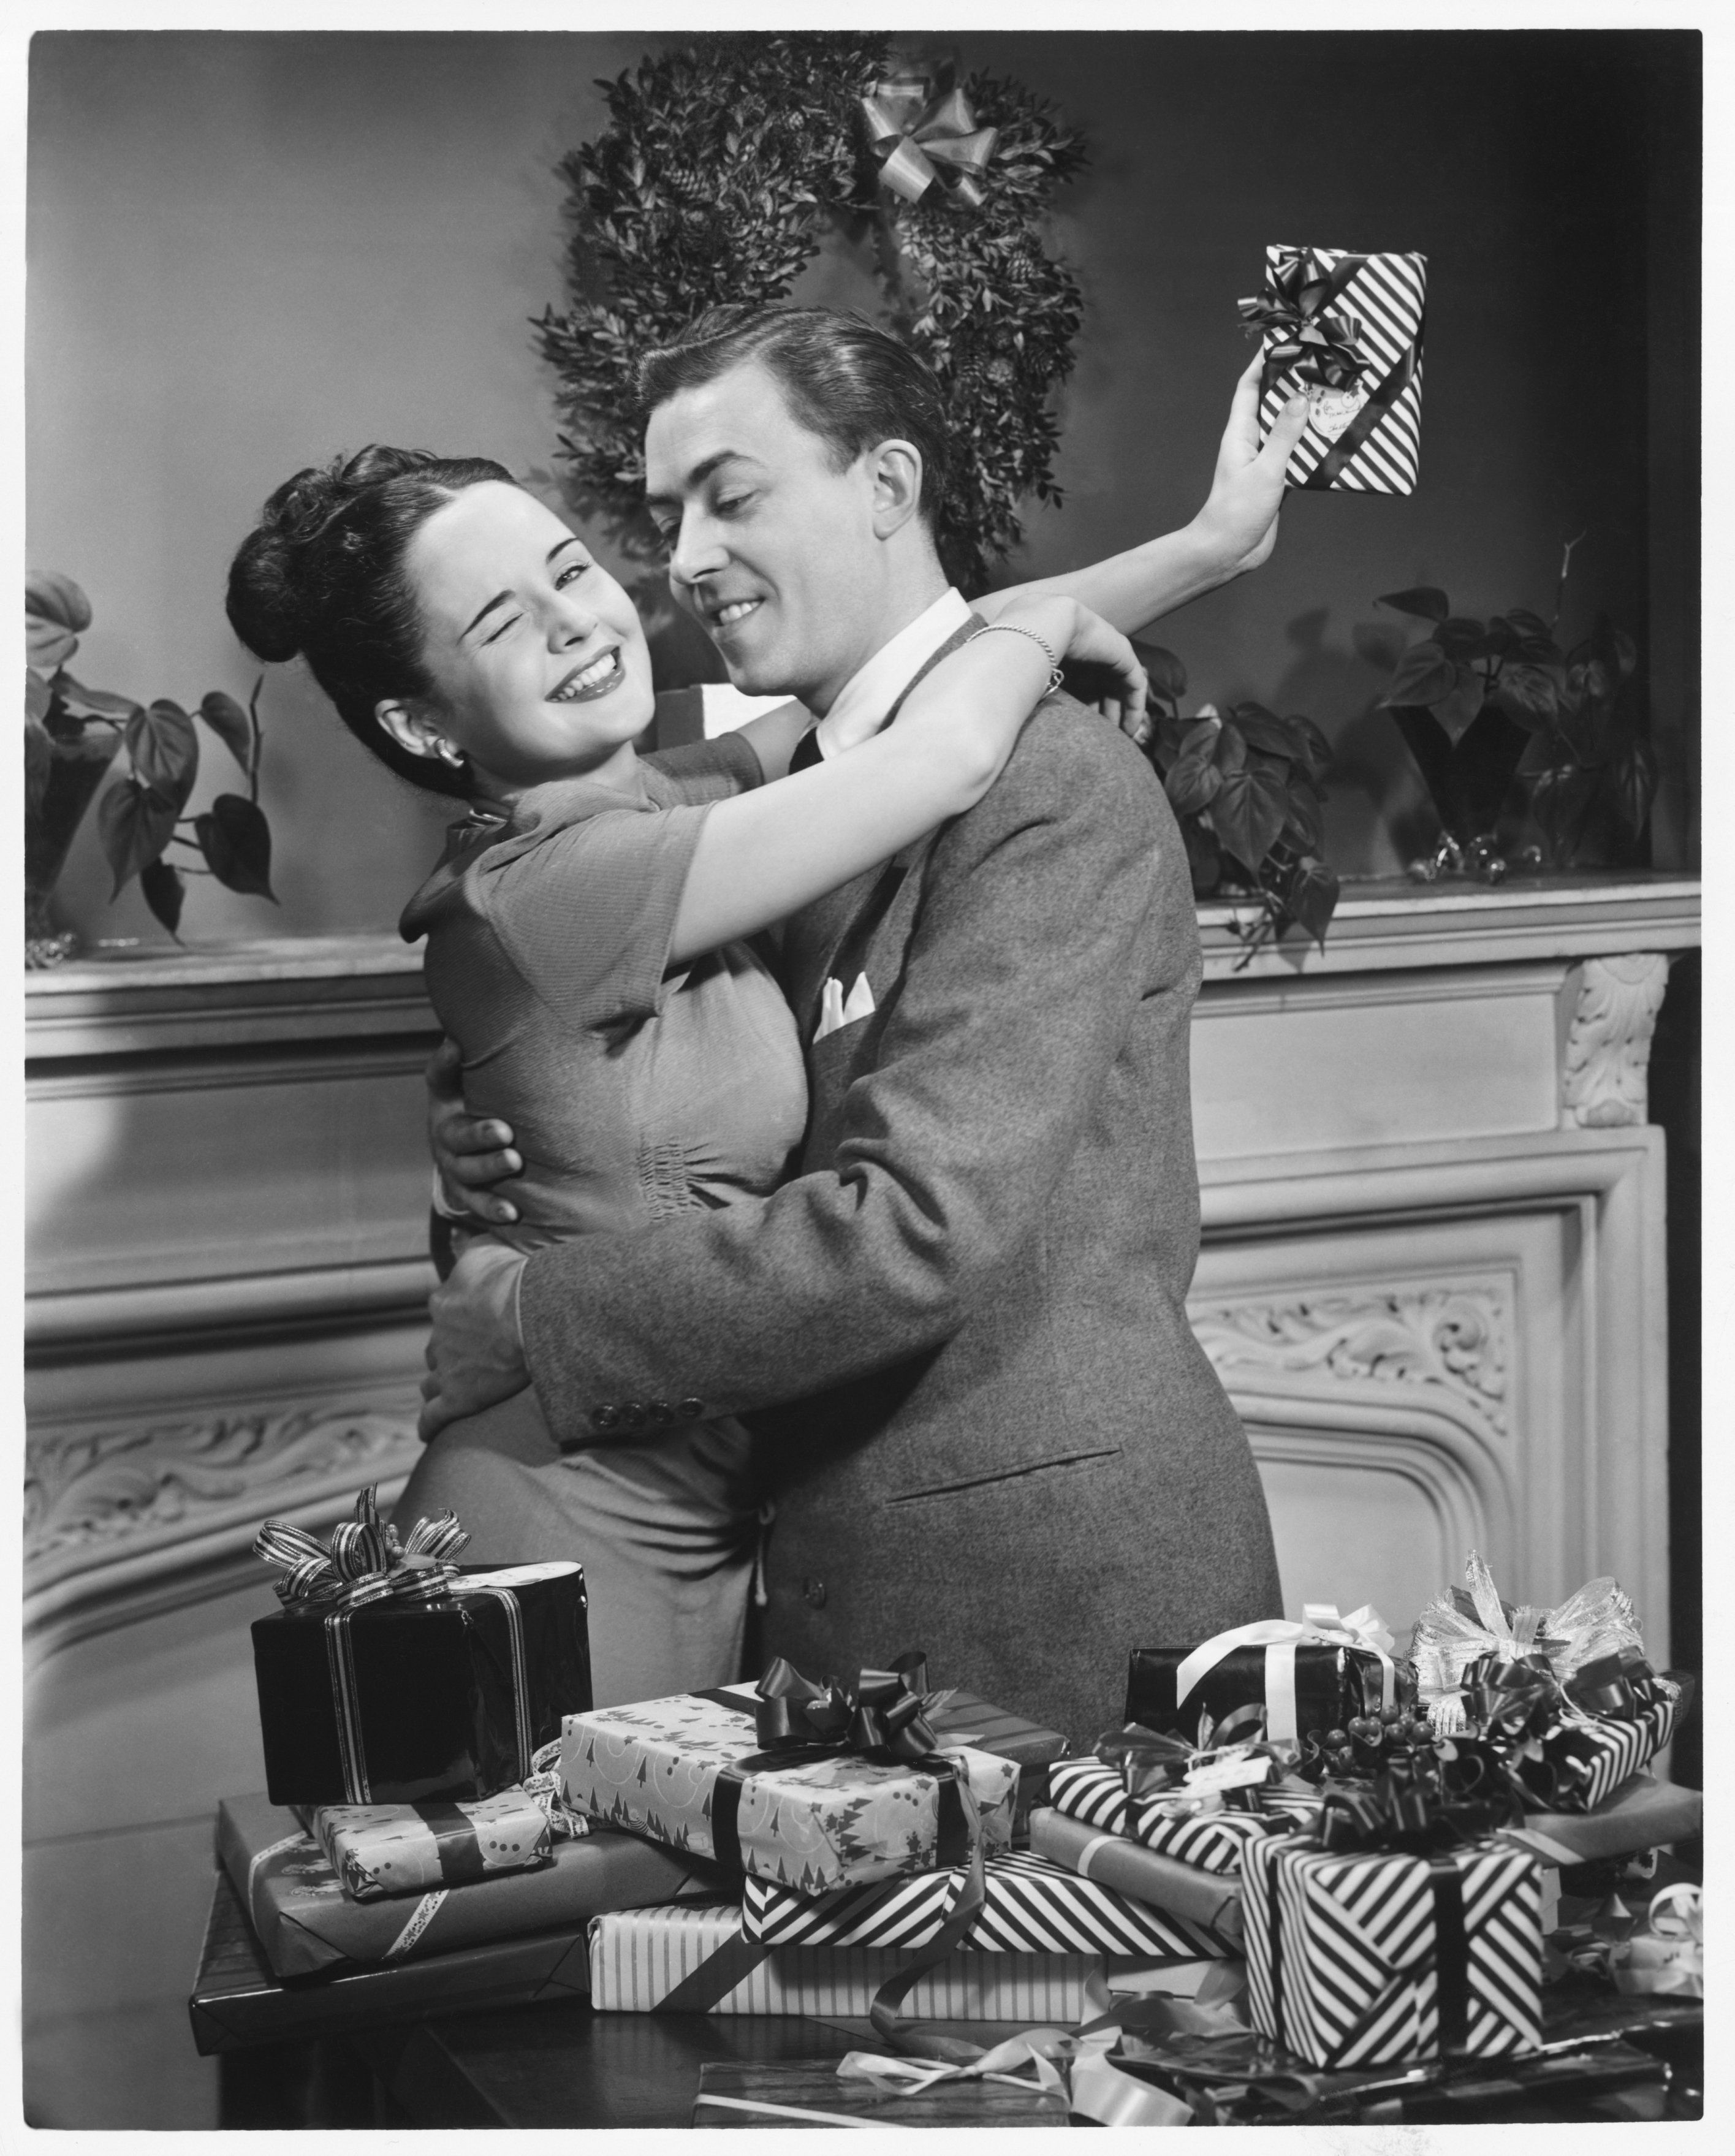 Couple embracing at table with Christmas presents, (B&W)